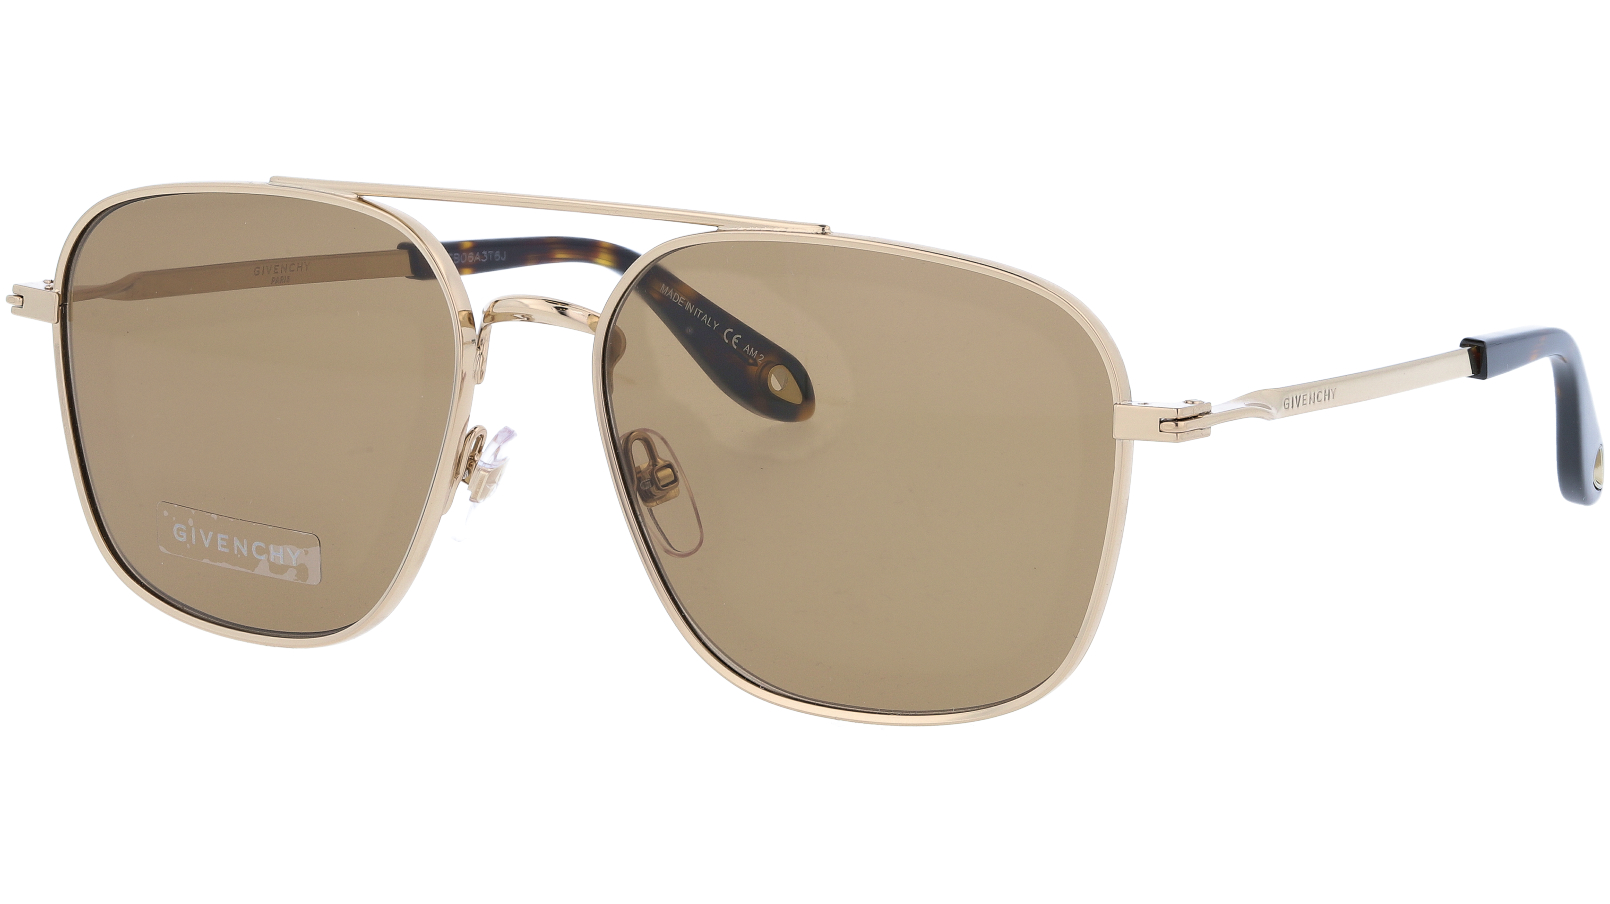 GIVENCHY GV7033S 01085 56 PALLADIUM Sunglasses